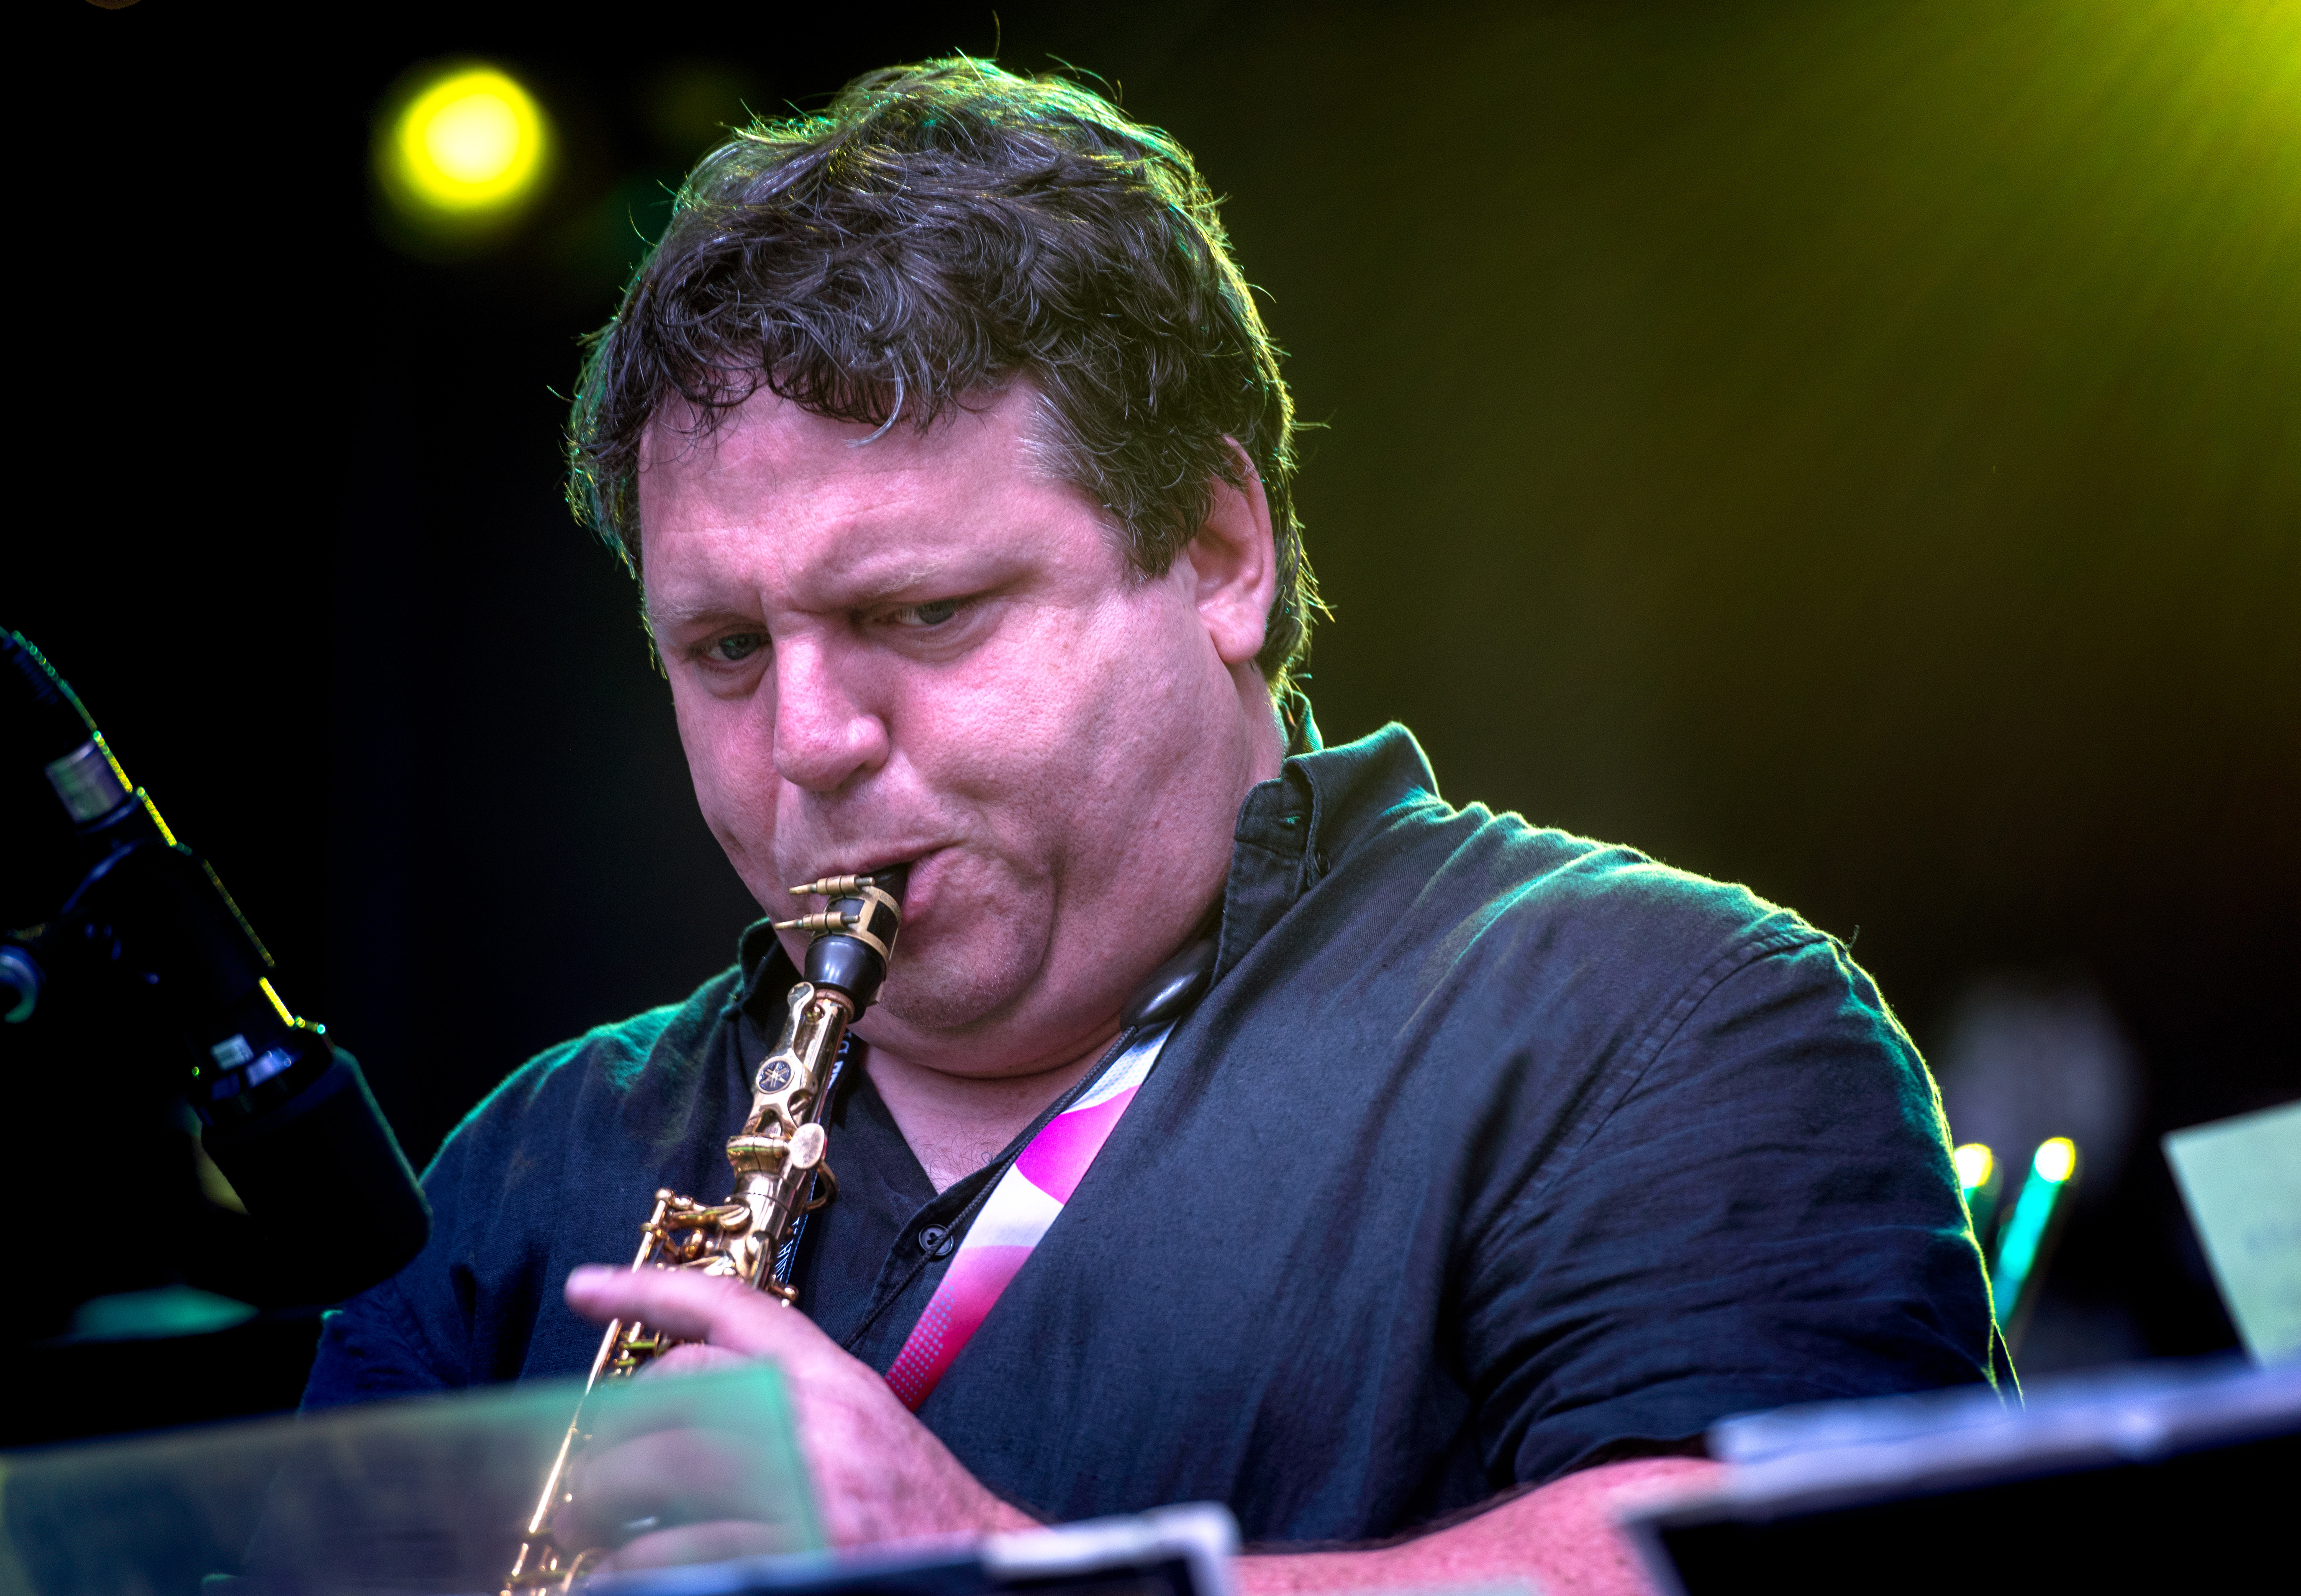 David Bellemare With The Joe Sullivan Big Band At The Montreal International Jazz Festival 2018